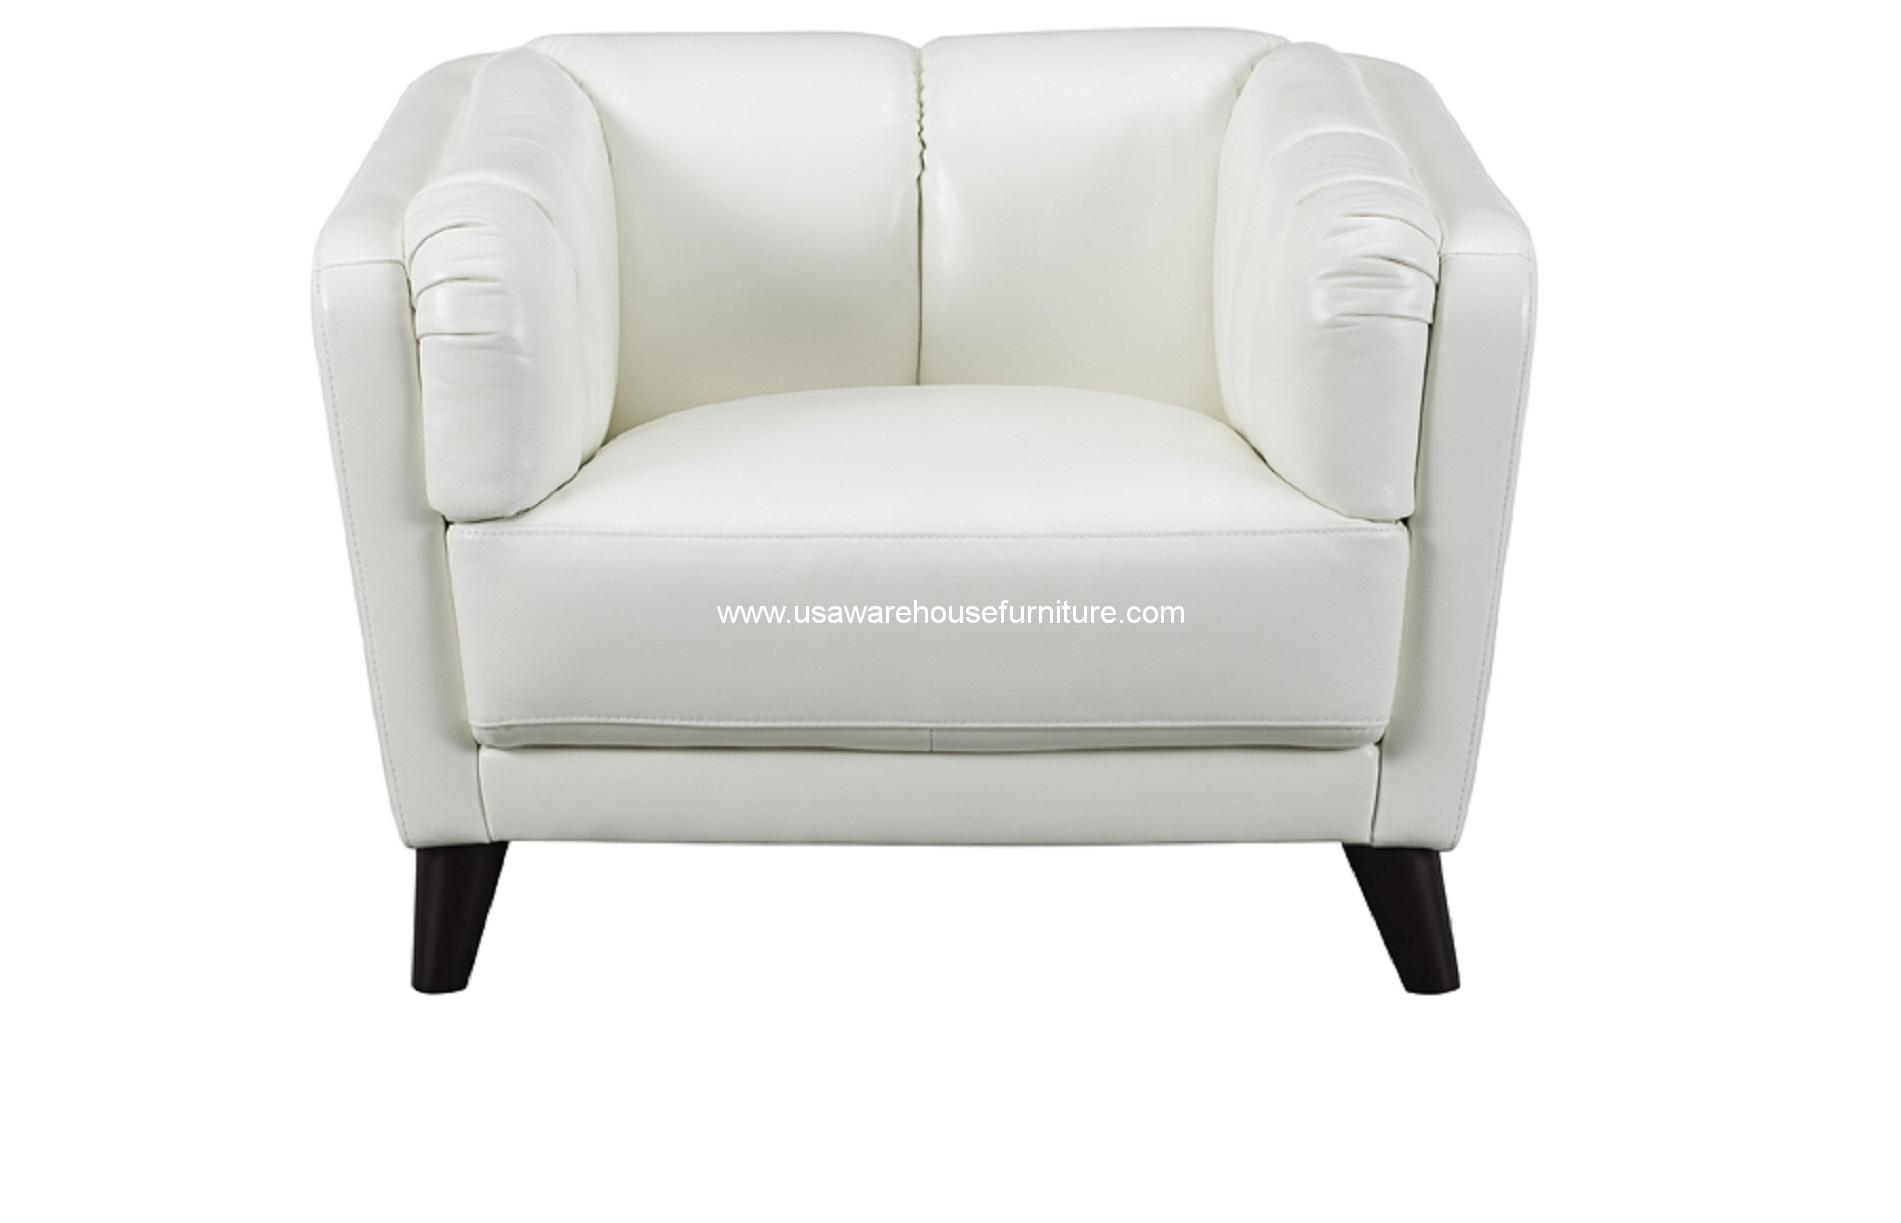 frances ivory white full top grain leather chair usa warehouse furniture. Black Bedroom Furniture Sets. Home Design Ideas